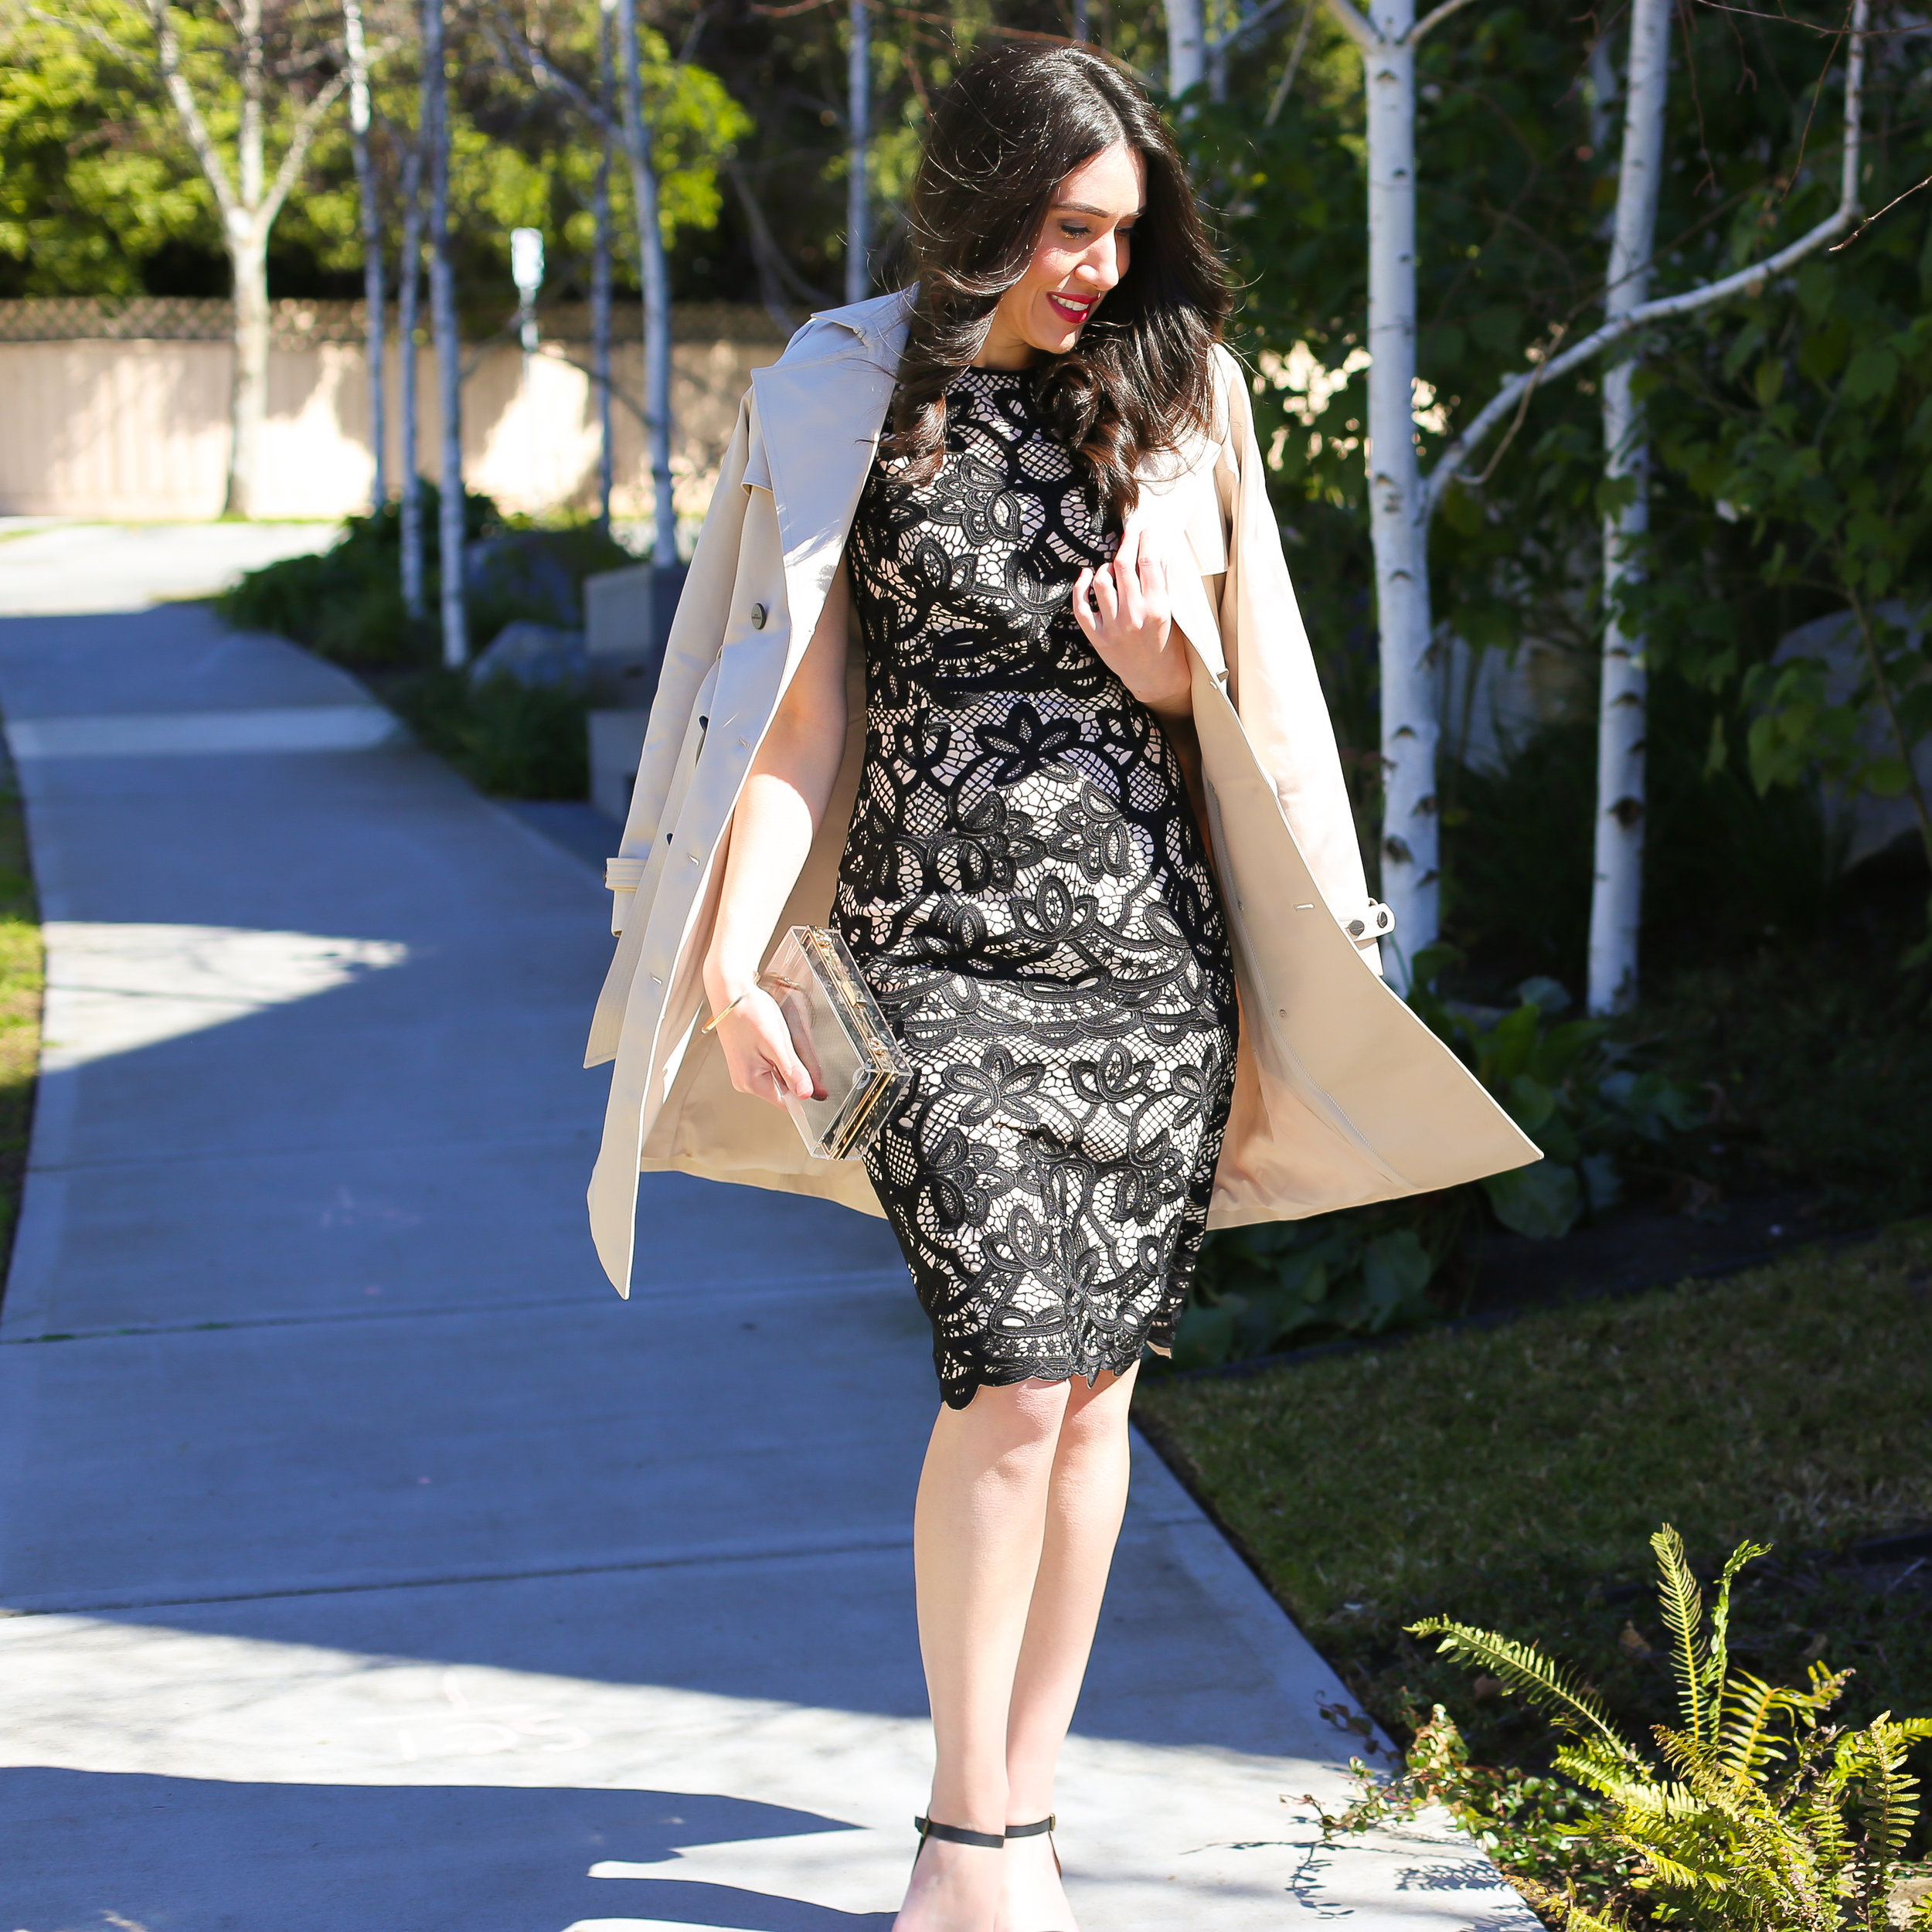 Lisa wears  David Lawrence Ravenna Bonded Lace Sleeveless Dress  and  Astor Trench Coat